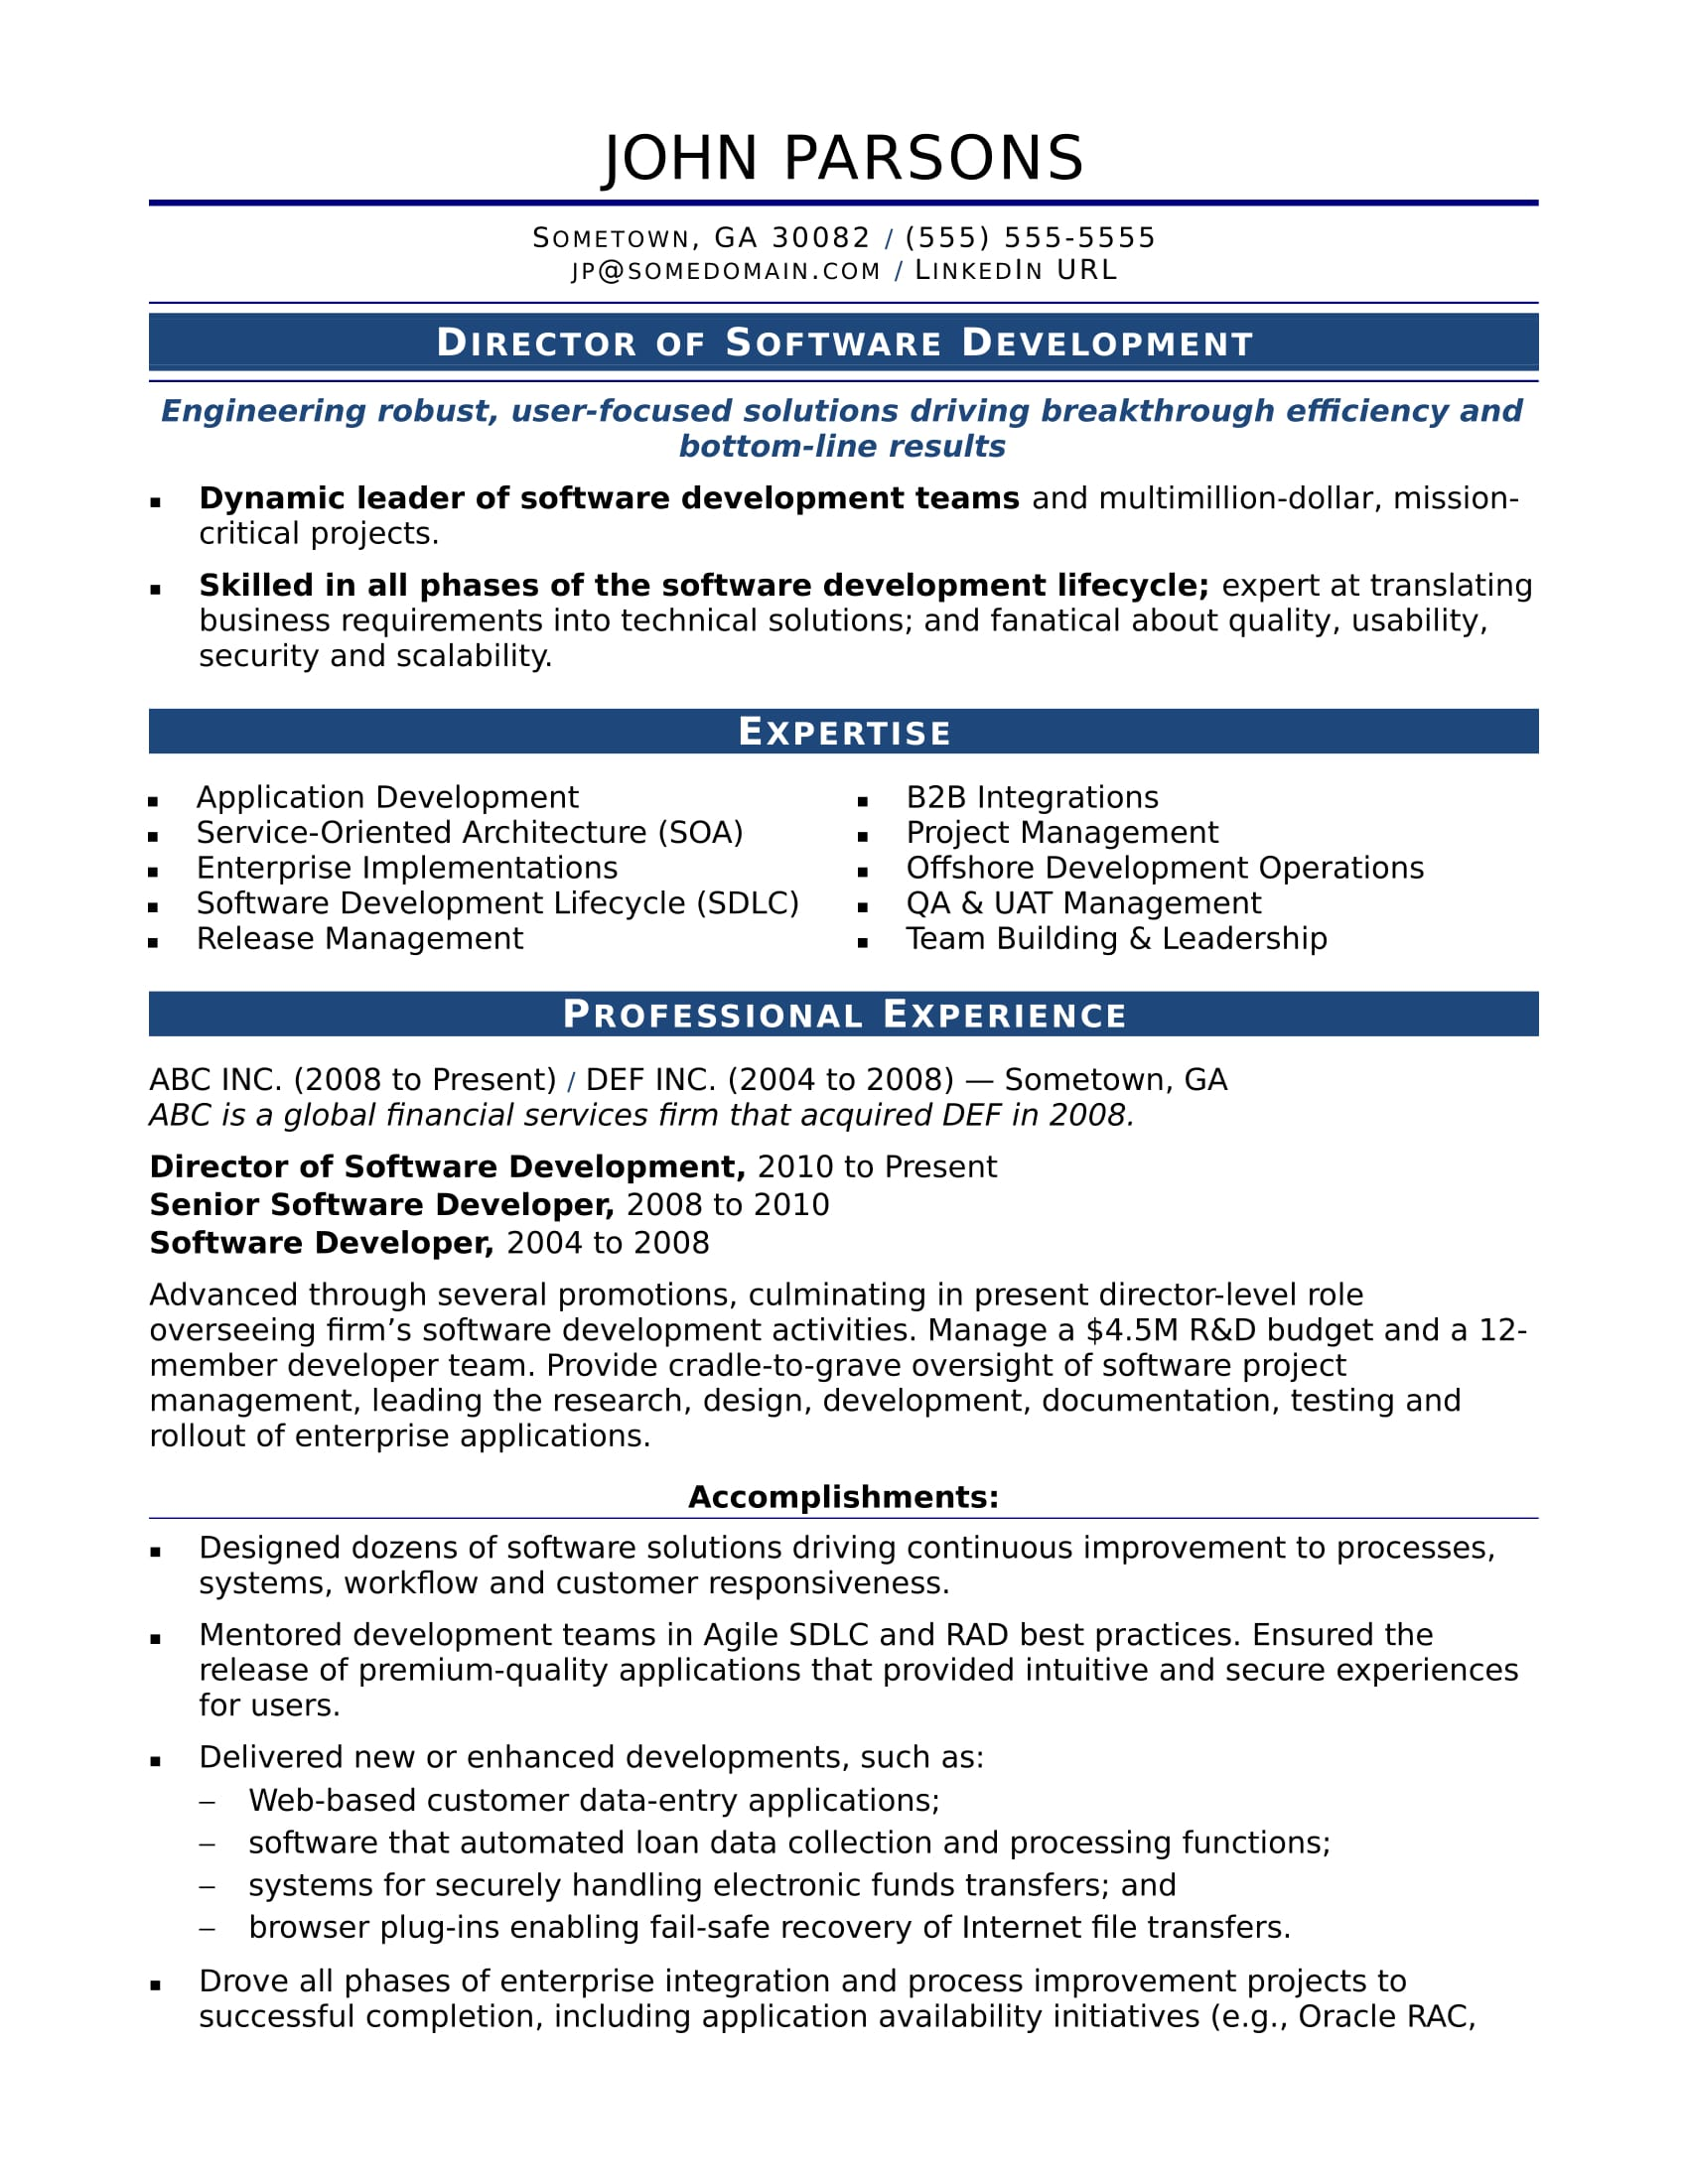 Sample resume for an experienced it developer for Sample resume for software engineer with 1 year experience